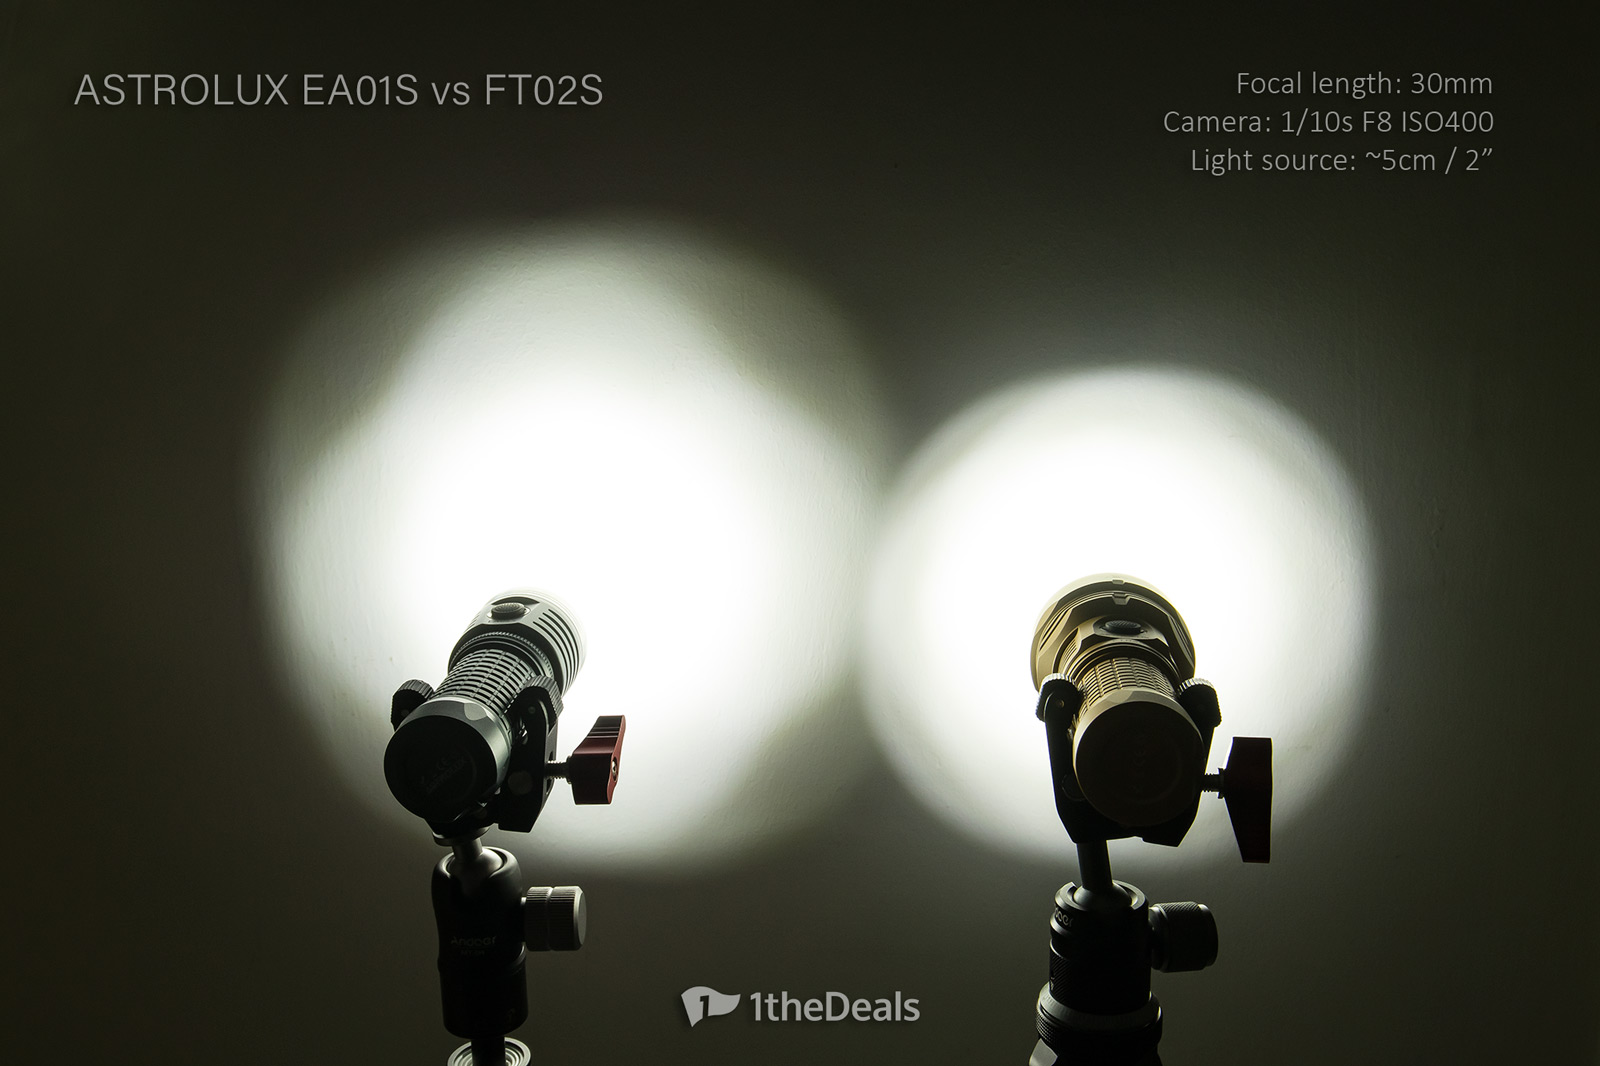 1thedeals-1920x1080-beam-profile-Astrolux-EA01S_vs_FT01S-01.jpg